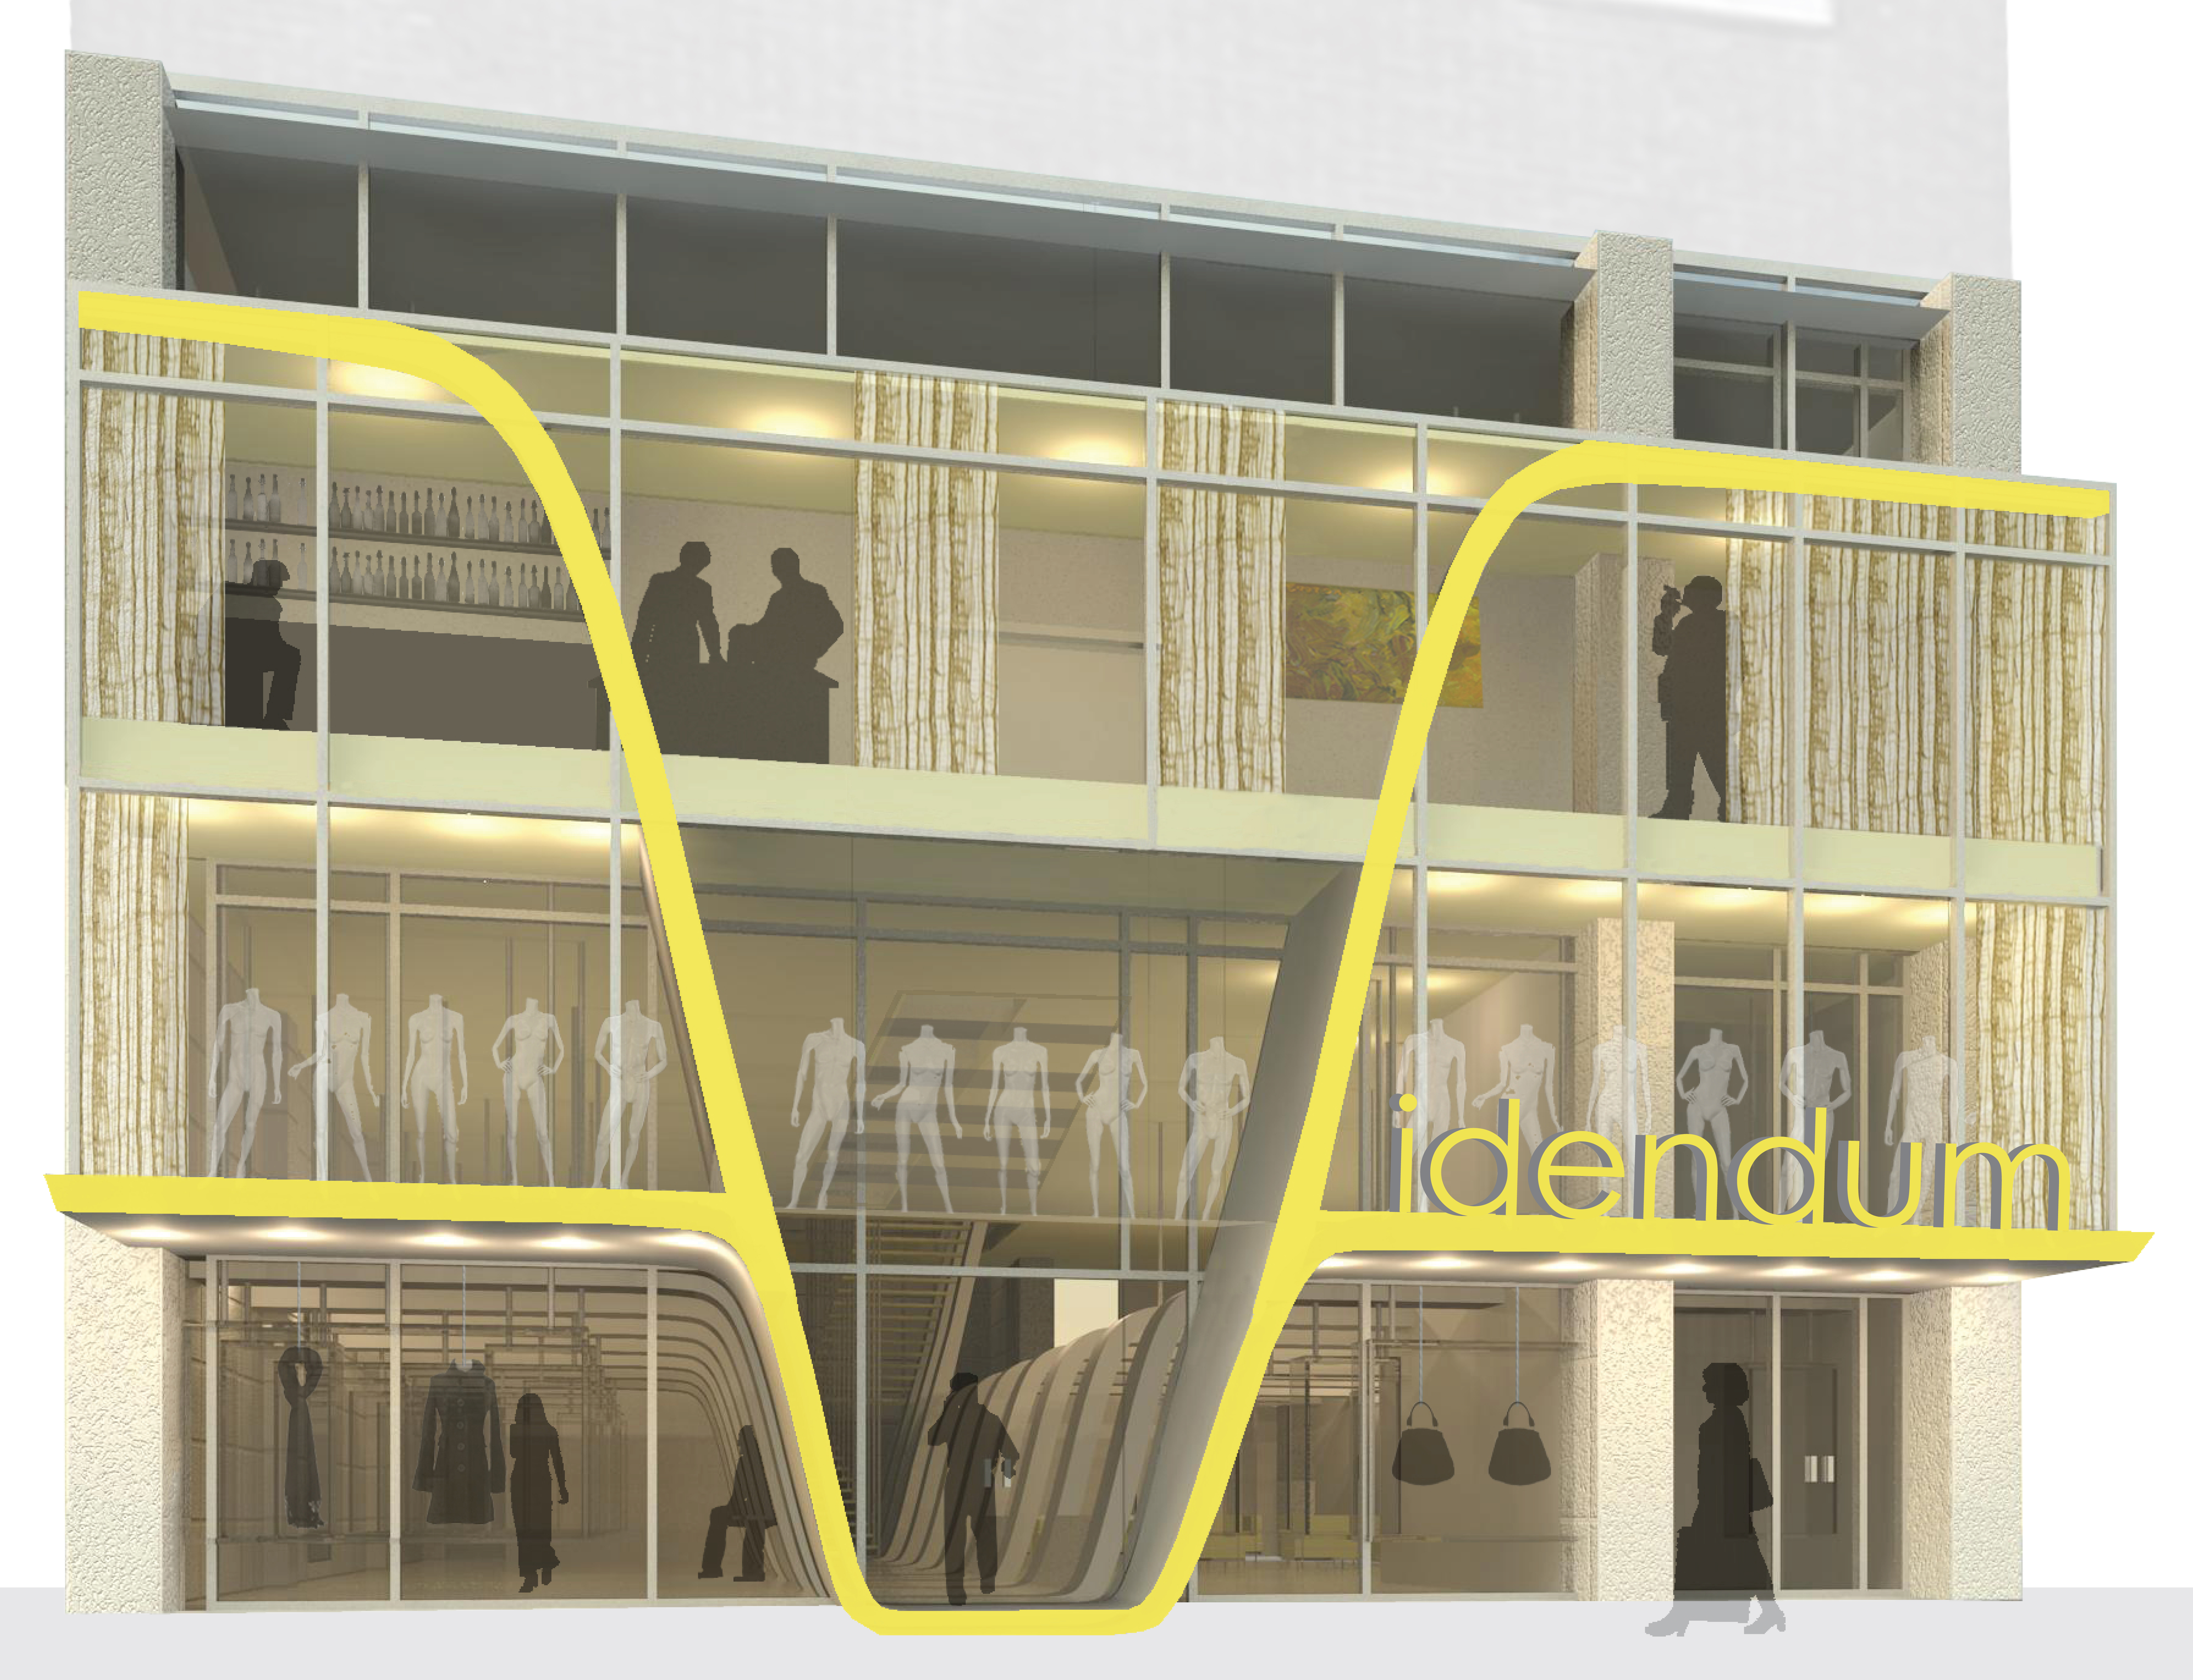 scholarships schools in architecture critique class of the each grand release have at school publicly aia produced architectural fall valley design interior their they graduating awards fernando san woodbury members present work education